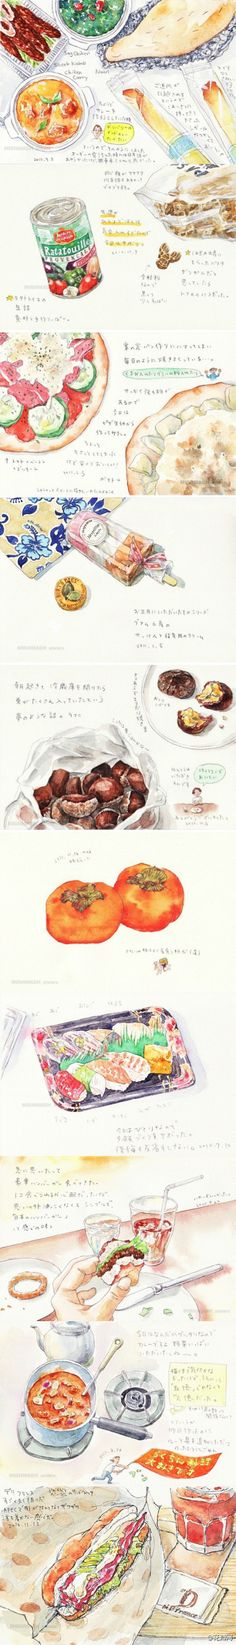 Imagine how delicious looking and beautiful a food drawing with these illustrations in them every day would be ^_^ Food Drawing, Painting & Drawing, Cute Illustration, Watercolor Illustration, Dm Poster, Pinterest Instagram, Food Sketch, Watercolor Food, Arte Sketchbook